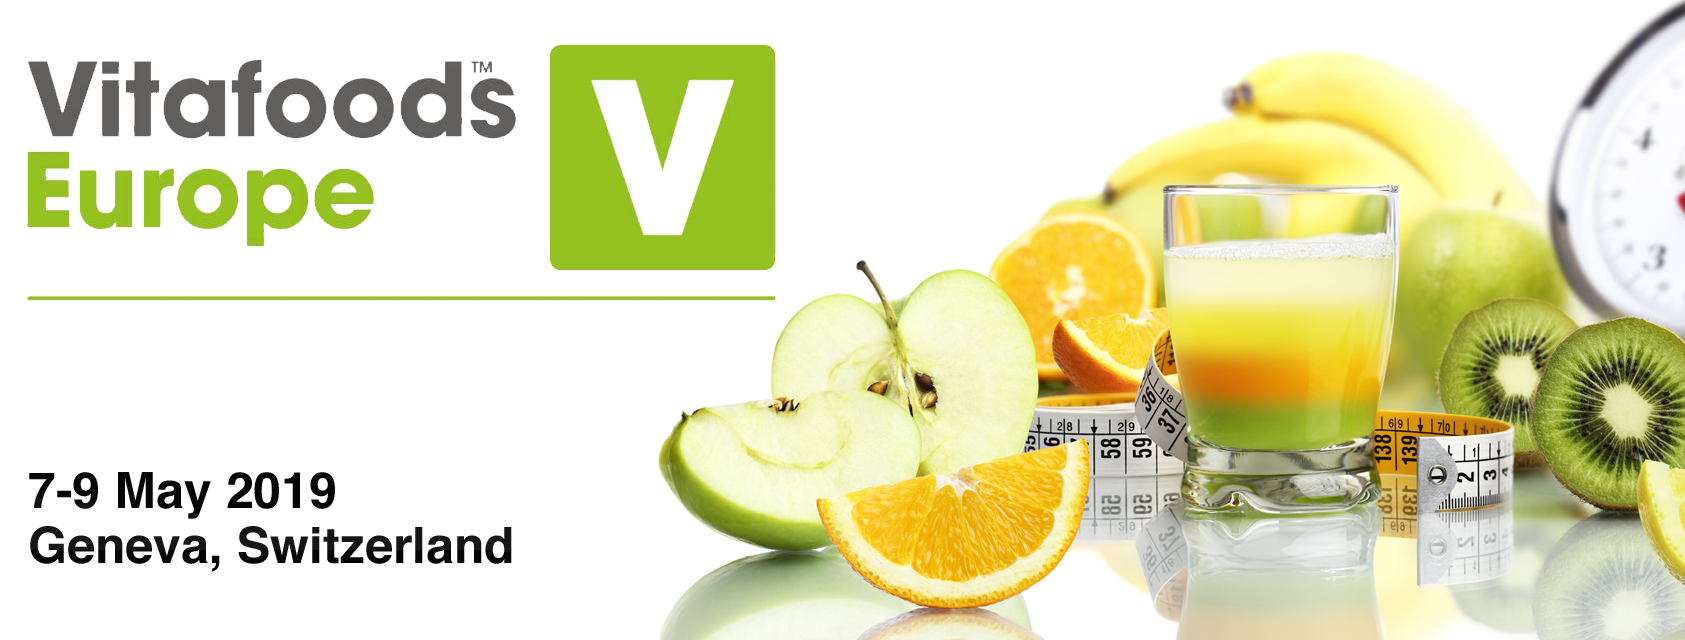 Vitafoods 2019 – the global nutraceutical event